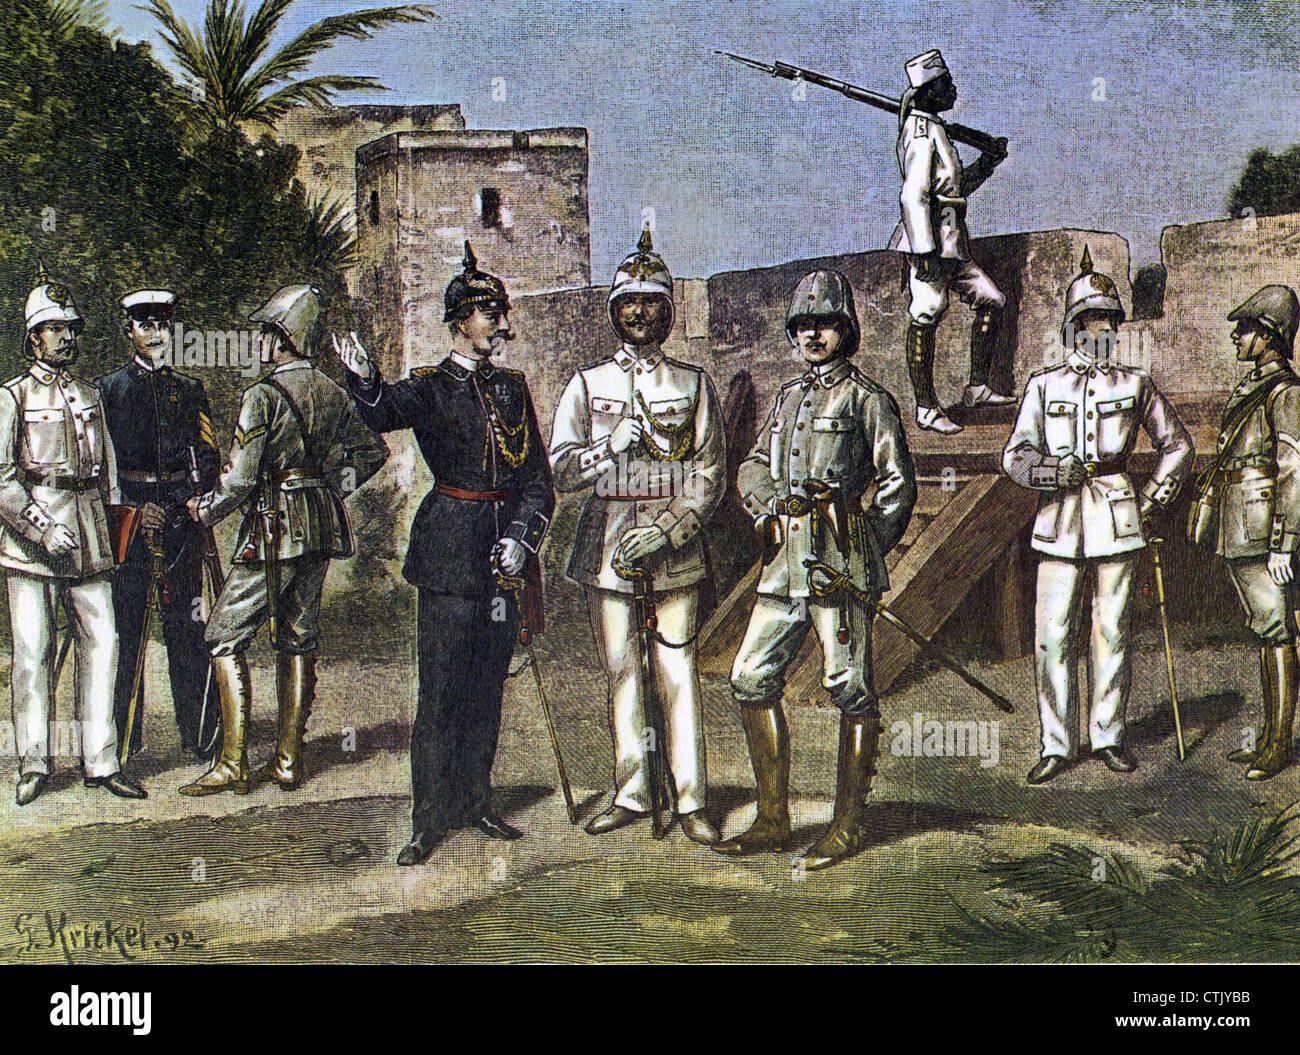 GERMAN  COLONIAL OFFICERS IN AFRICA  in 1892 as shown in the French magazine Le Petit Illustre - Stock Image